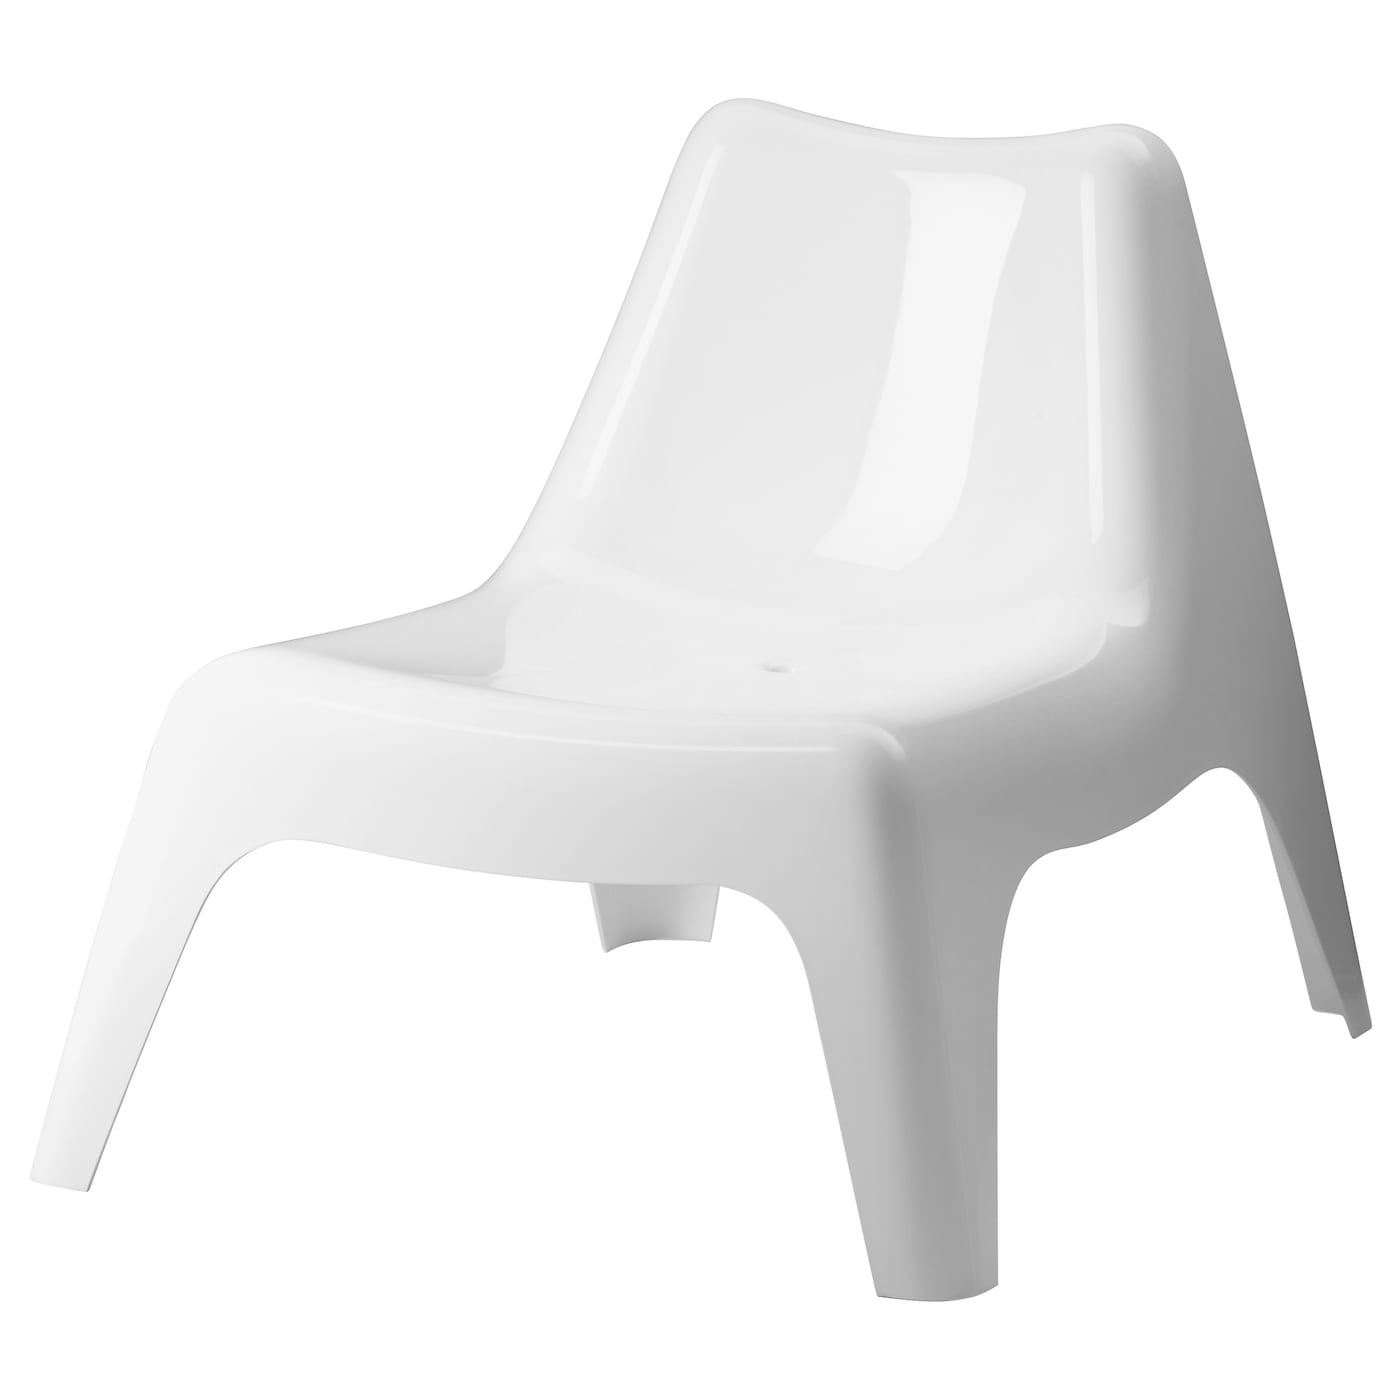 Ikea ps v g easy chair outdoor white ikea - Fauteuil de jardin ikea vago pau ...